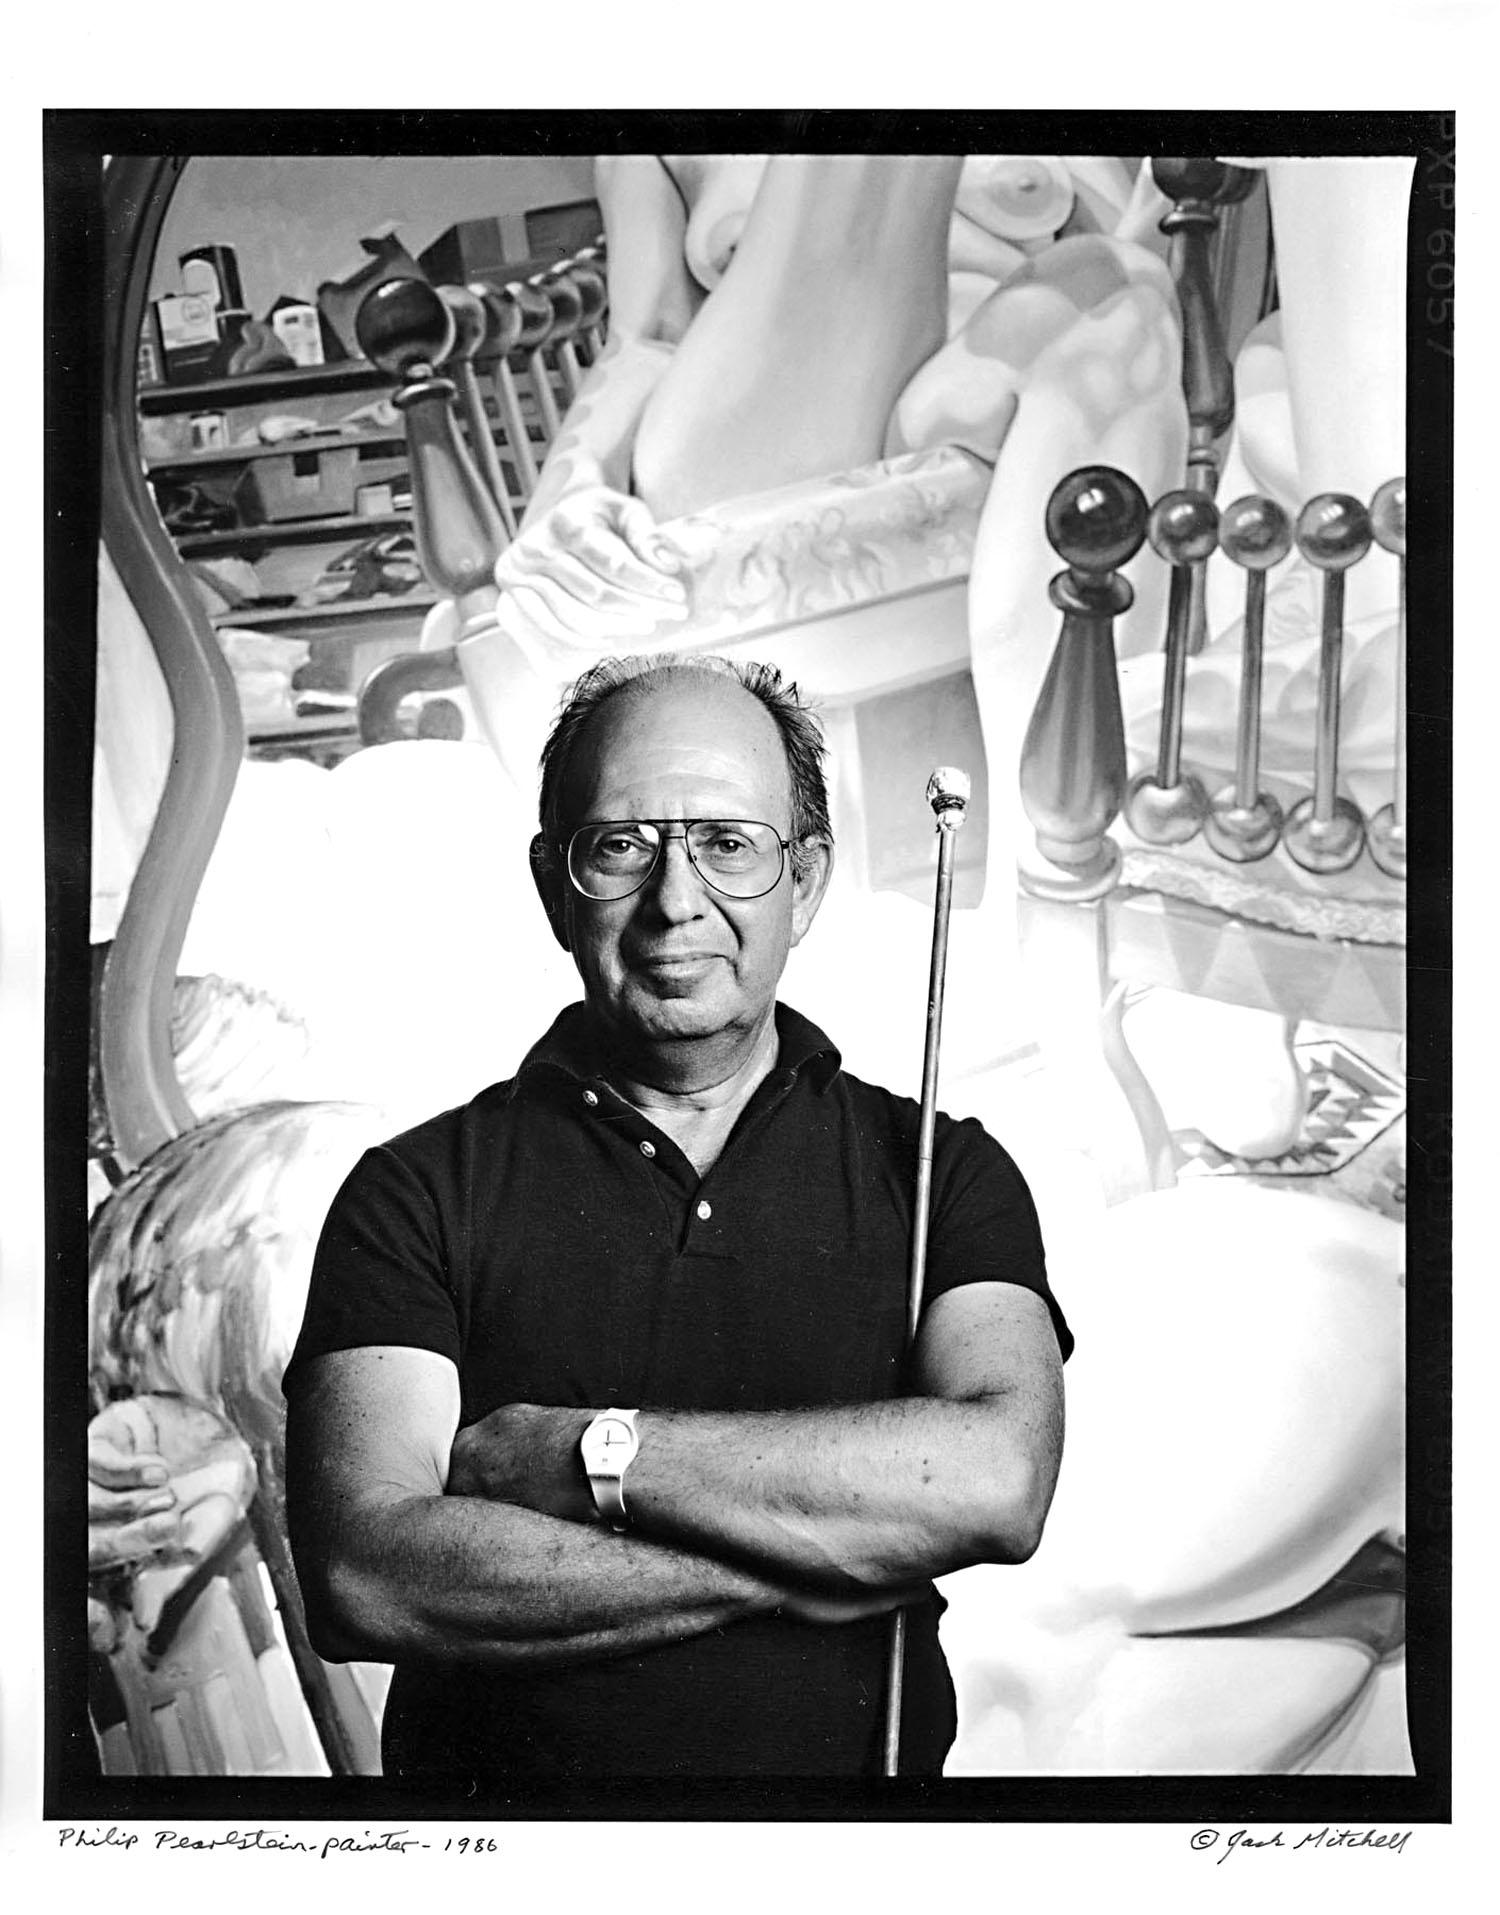 Artist Philip Pearlstein in his studio with his work, signed by Jack Mitchell